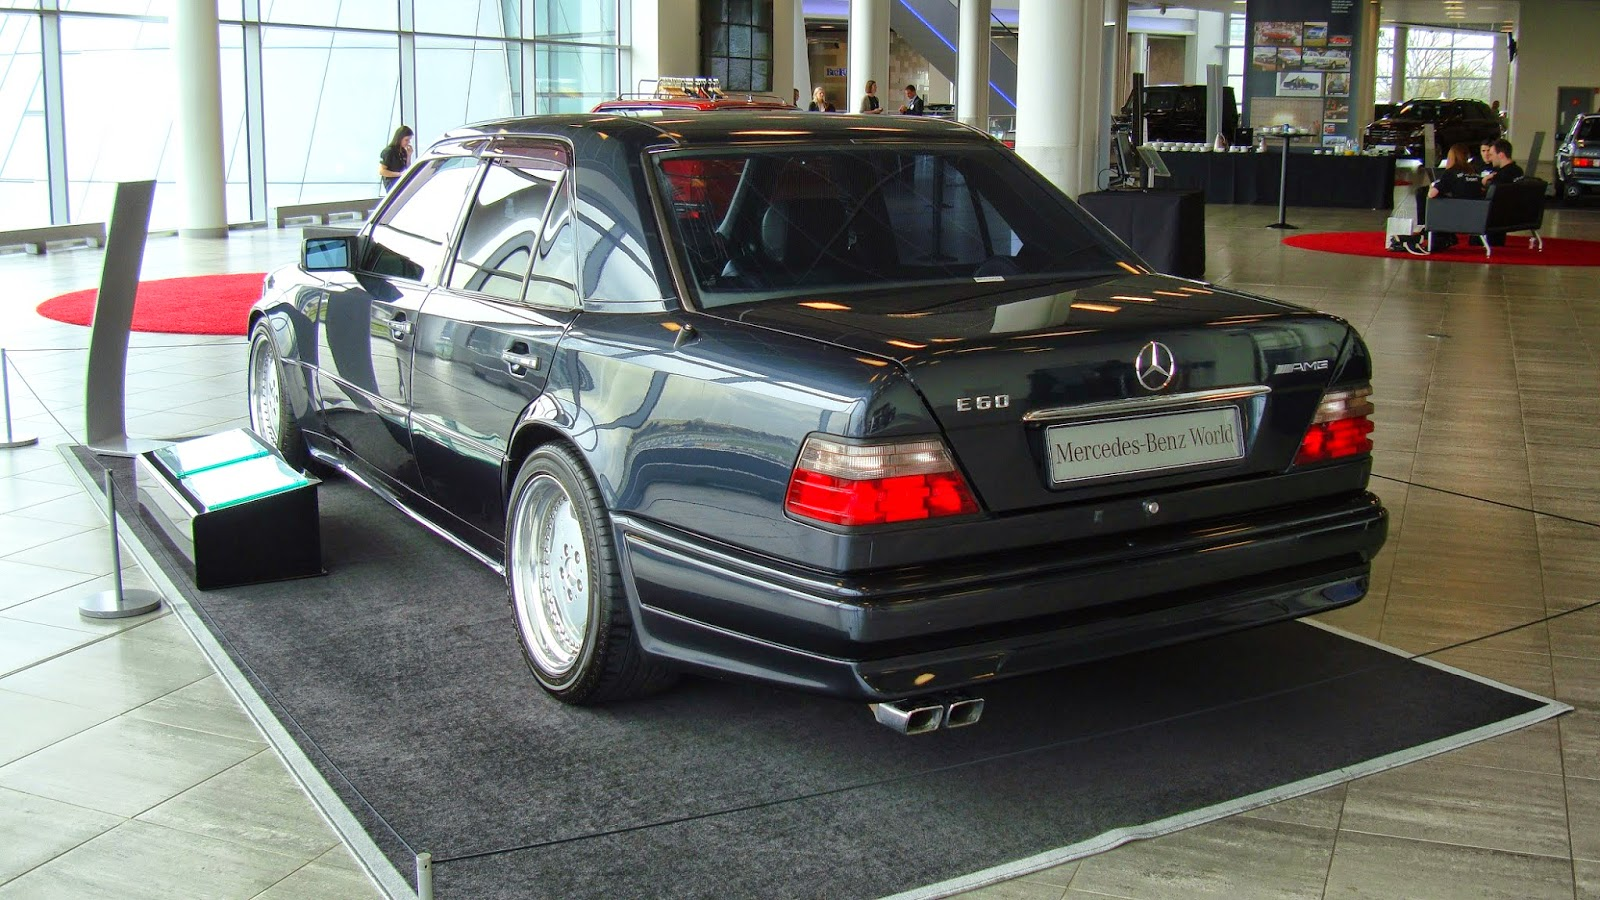 Mb w124 e60 amg limited edition benztuning for Mercedes benz e60 amg